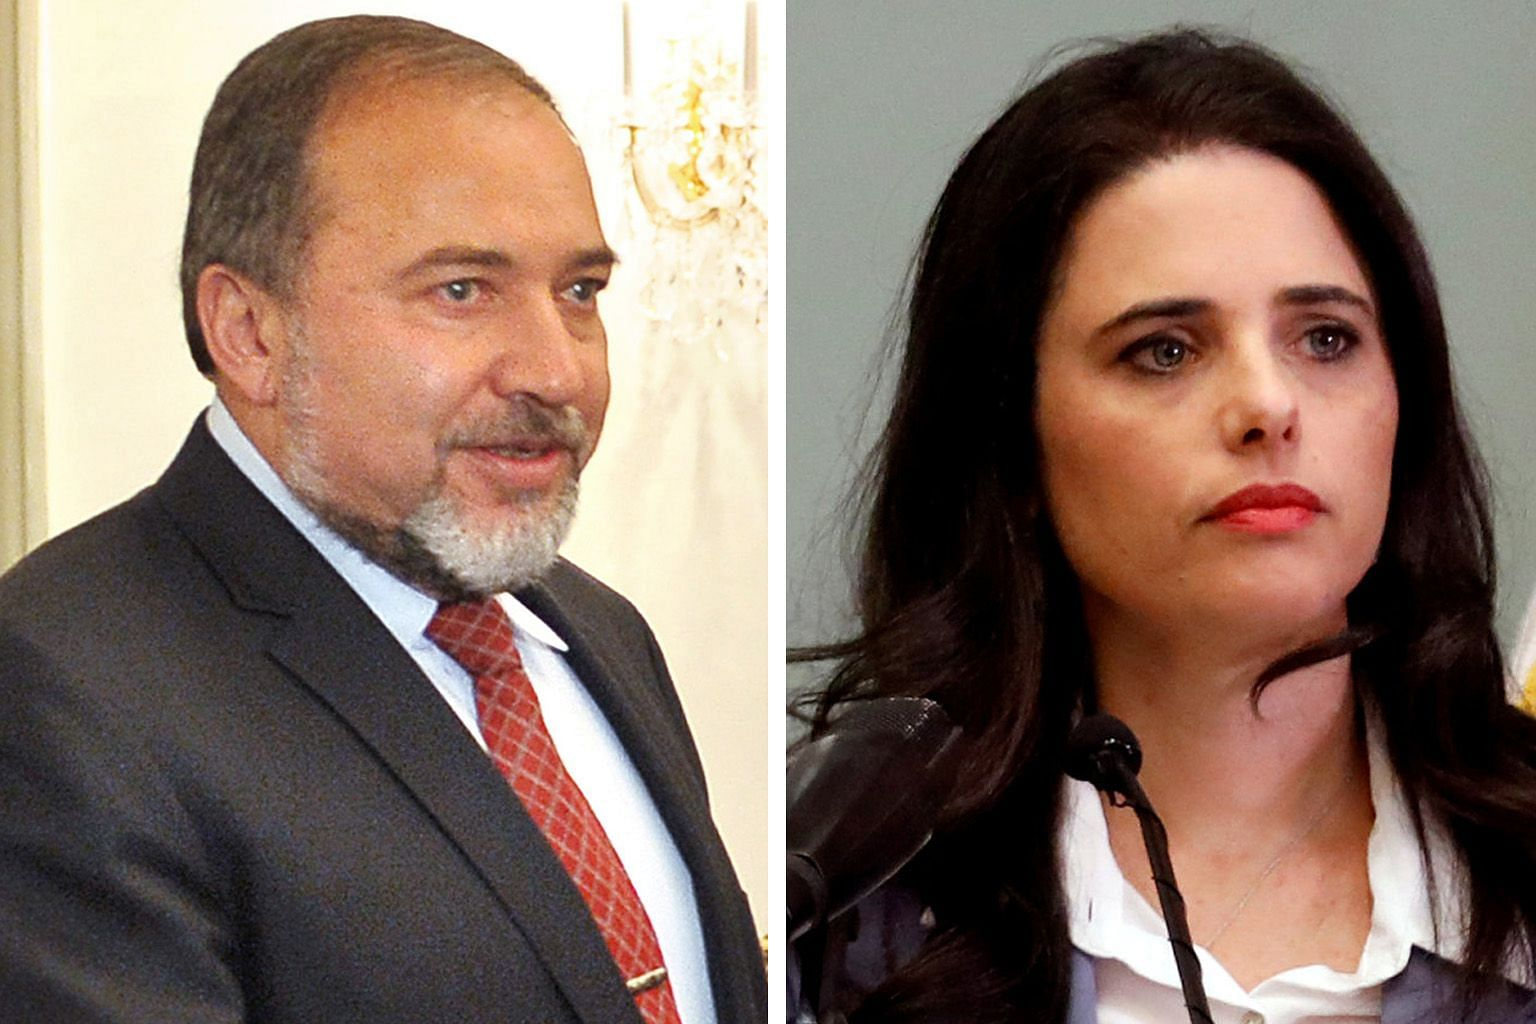 Former chief of staff Avigdor Liberman has become Israel's kingmaker. Justice Minister Ayelet Shaked was considered the great hope of Israel's right-wing camp.